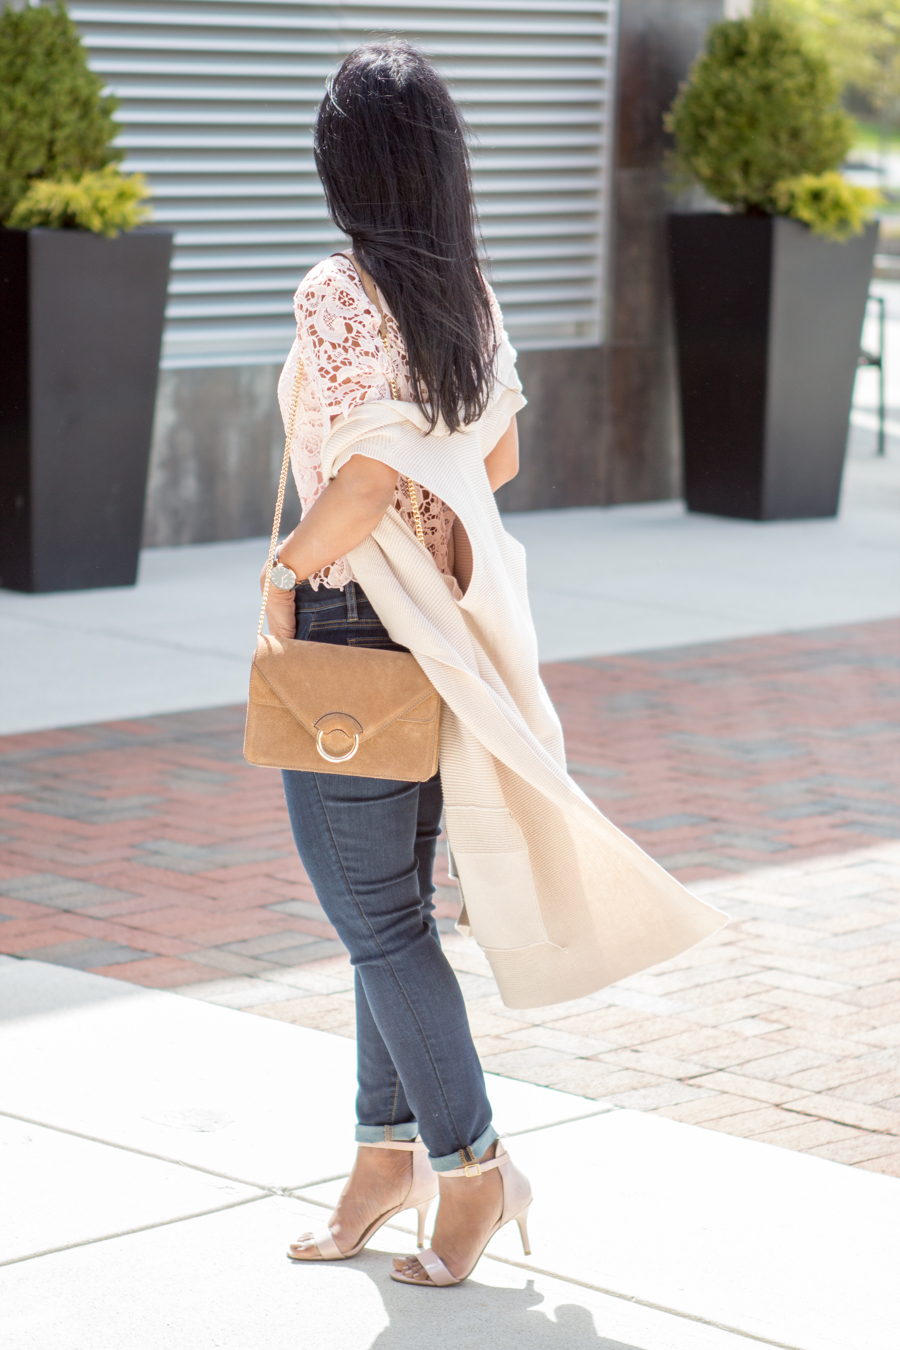 curvy jeans, petite jeans, skinny ankle jeans, spring lookbook, layers, vest, blush lace top, lace blouse, blush sandals, petite fashion, spring style, trendy style, banana republic bag, ann taylor